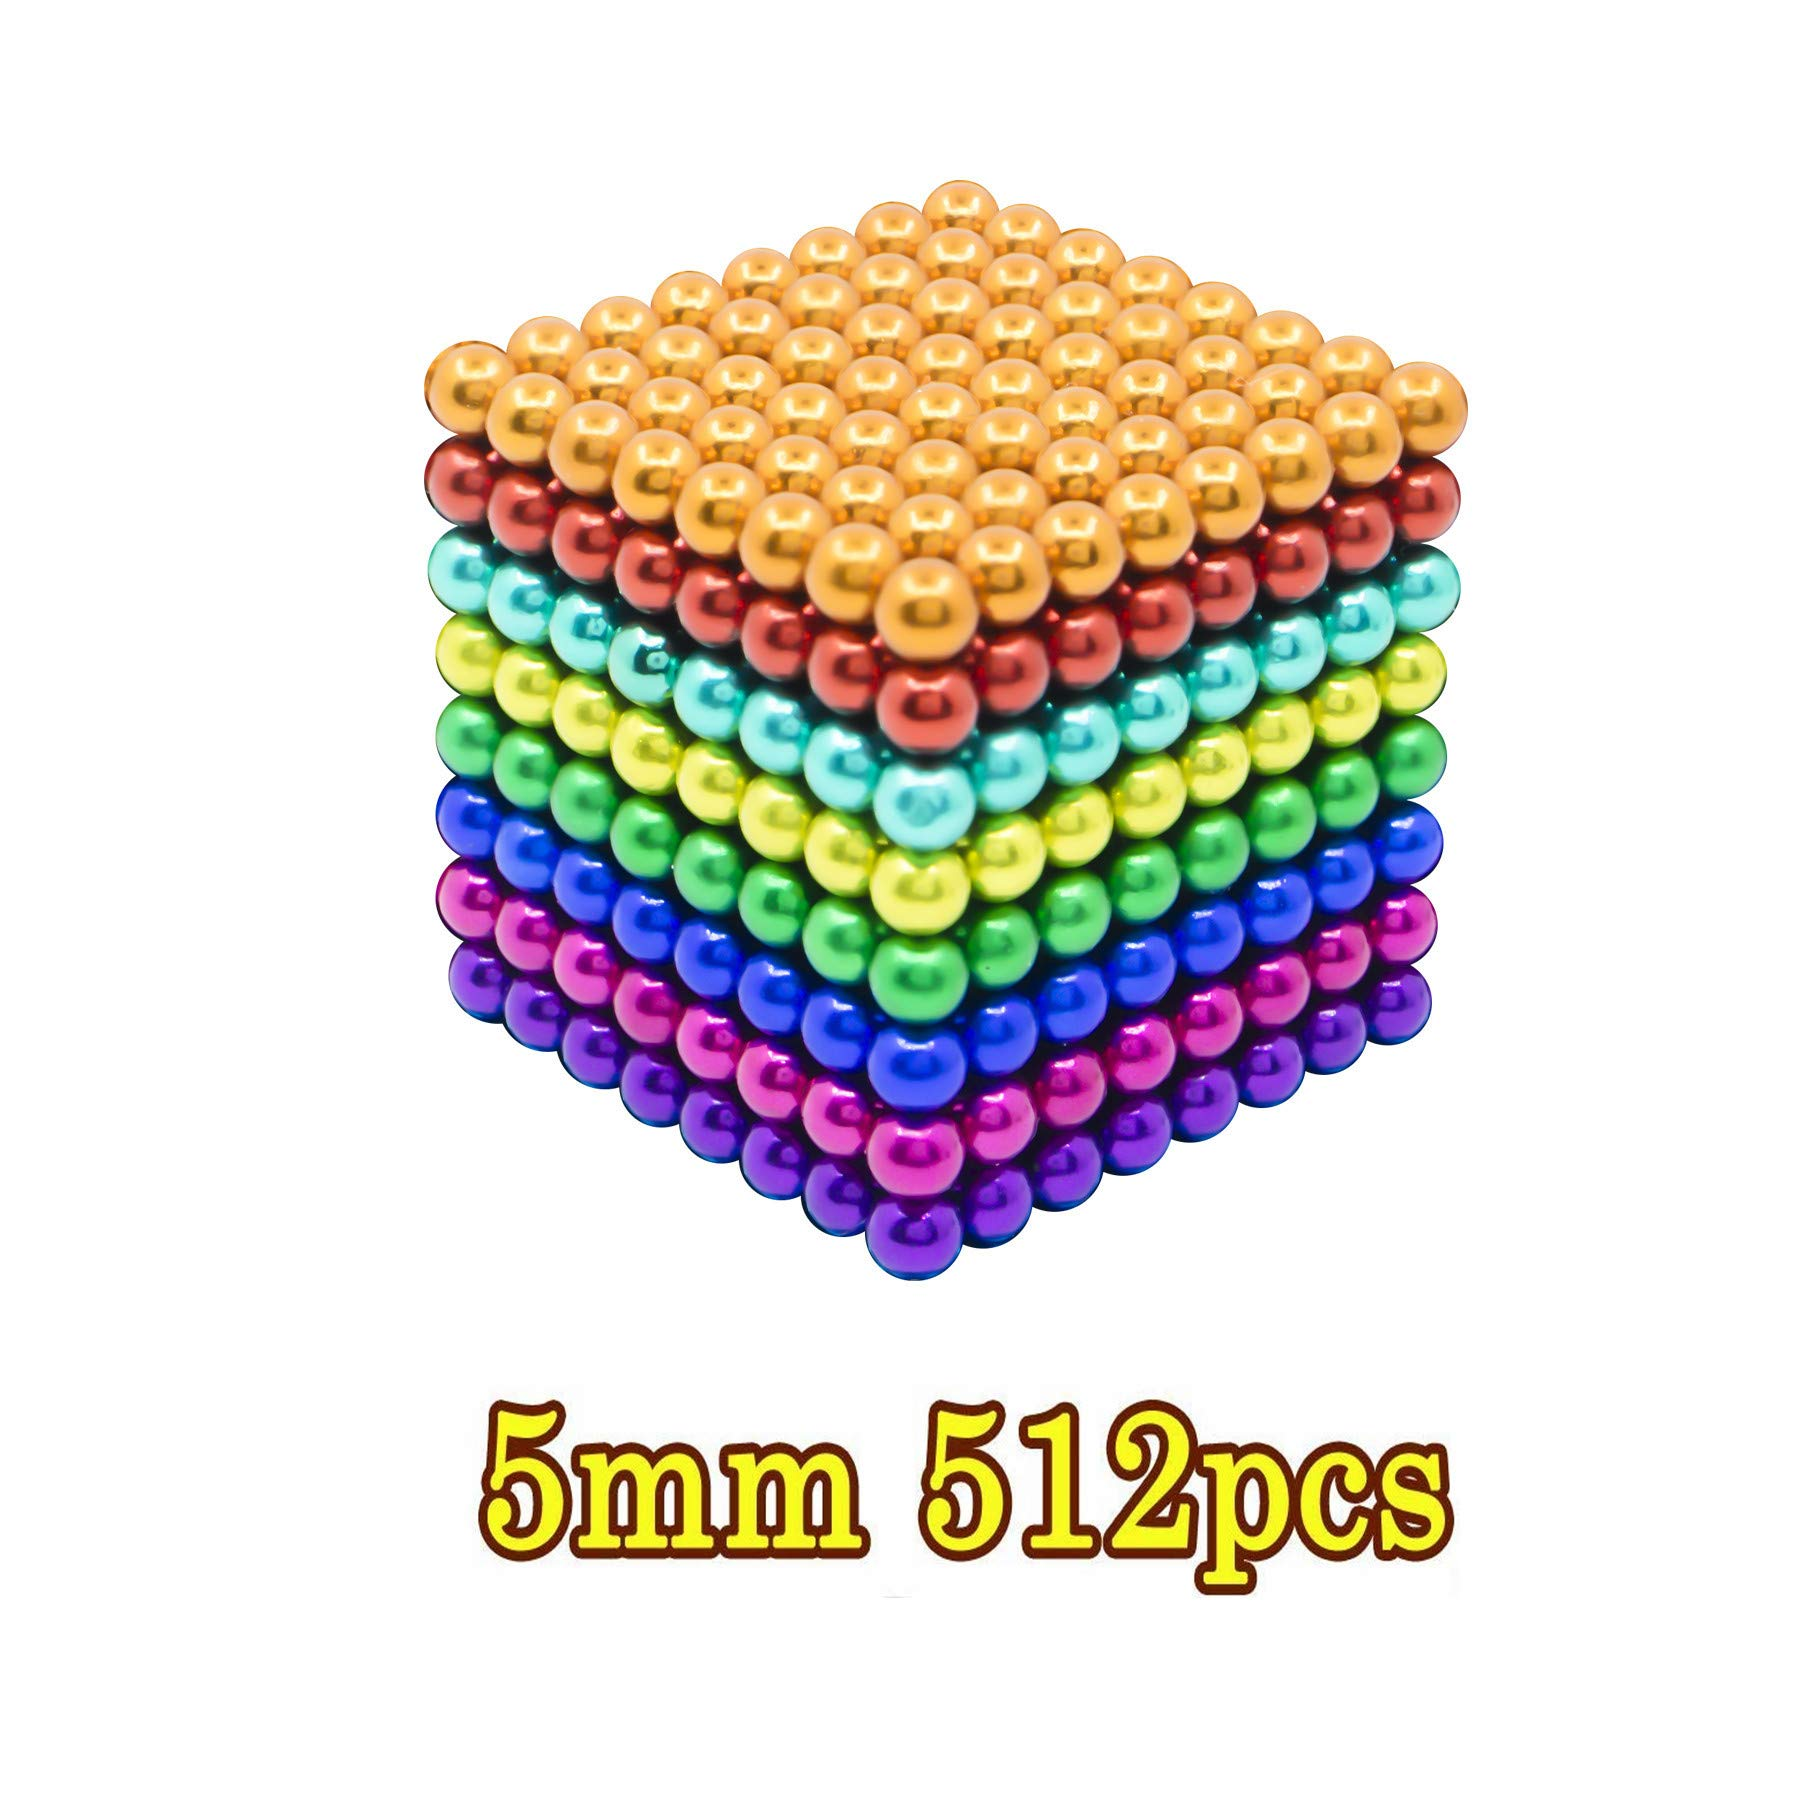 HBDeskToys Fidget Ball Puzzle,Cube Toys Sculpture Holders, Children's Puzzle Magic Cubes DIY Educational Toys for Intelligence & Stress Relief, 512Pcs,Colorful by HBDeskToys